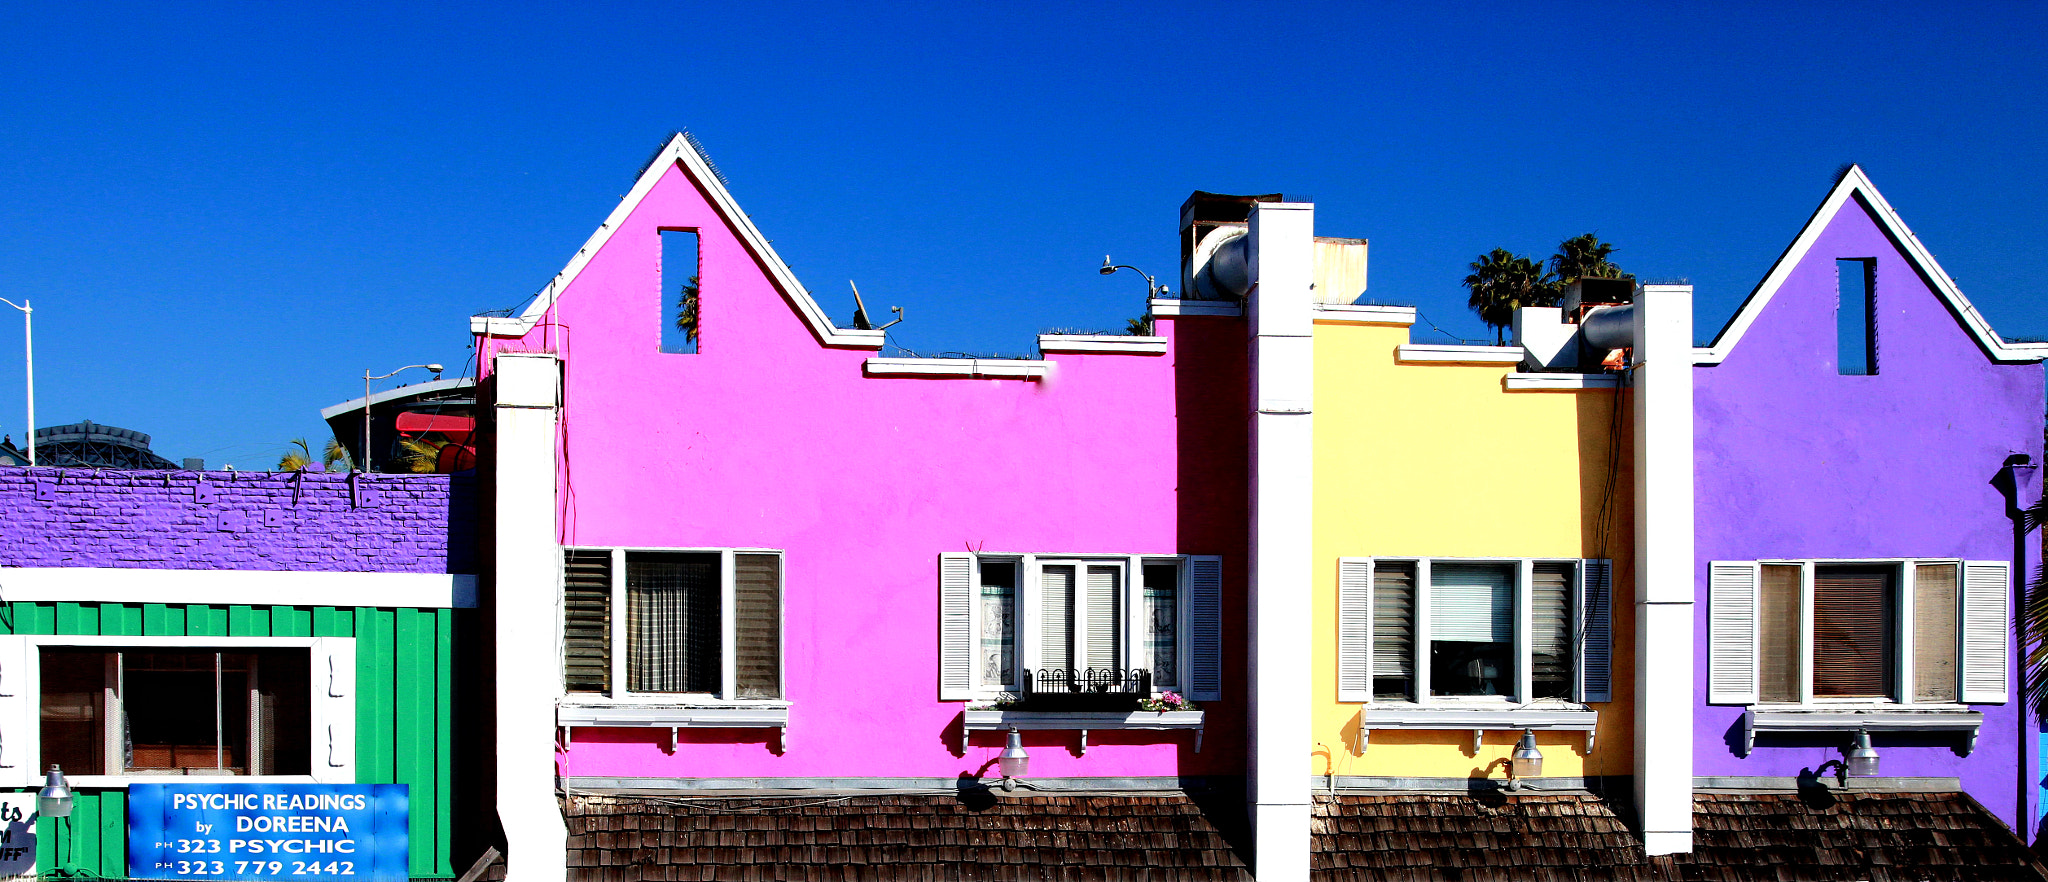 Photograph Houses by the sea by Cris T on 500px